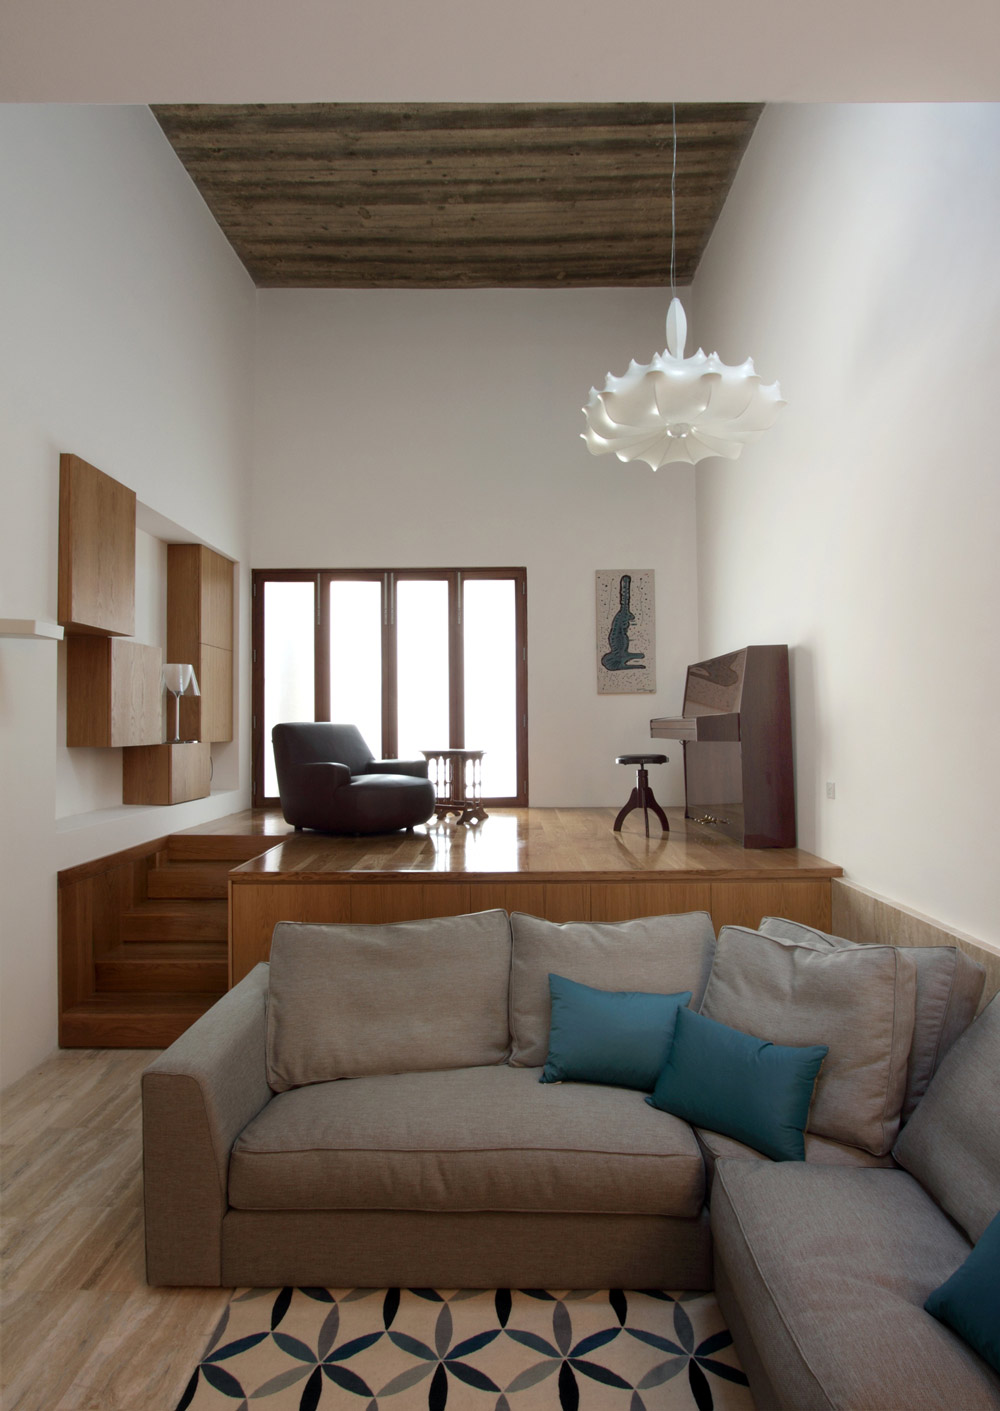 Living Space, Piano, Lighting, Sofa, Hanging Home in Naxxar, Malta by Chris Briffa Architects